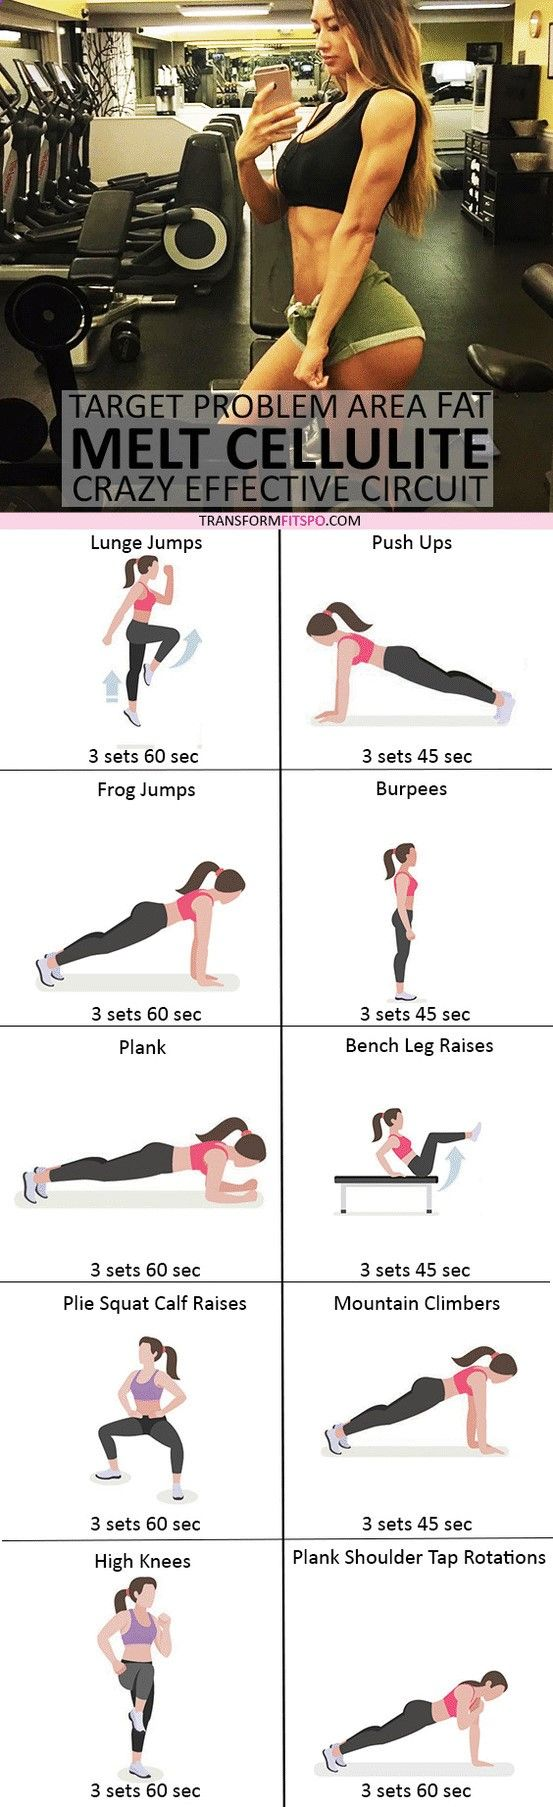 #womensworkout #workout #femalefitness Repin and share if this workout melted away your cellulite! Click the pin for the full workout.